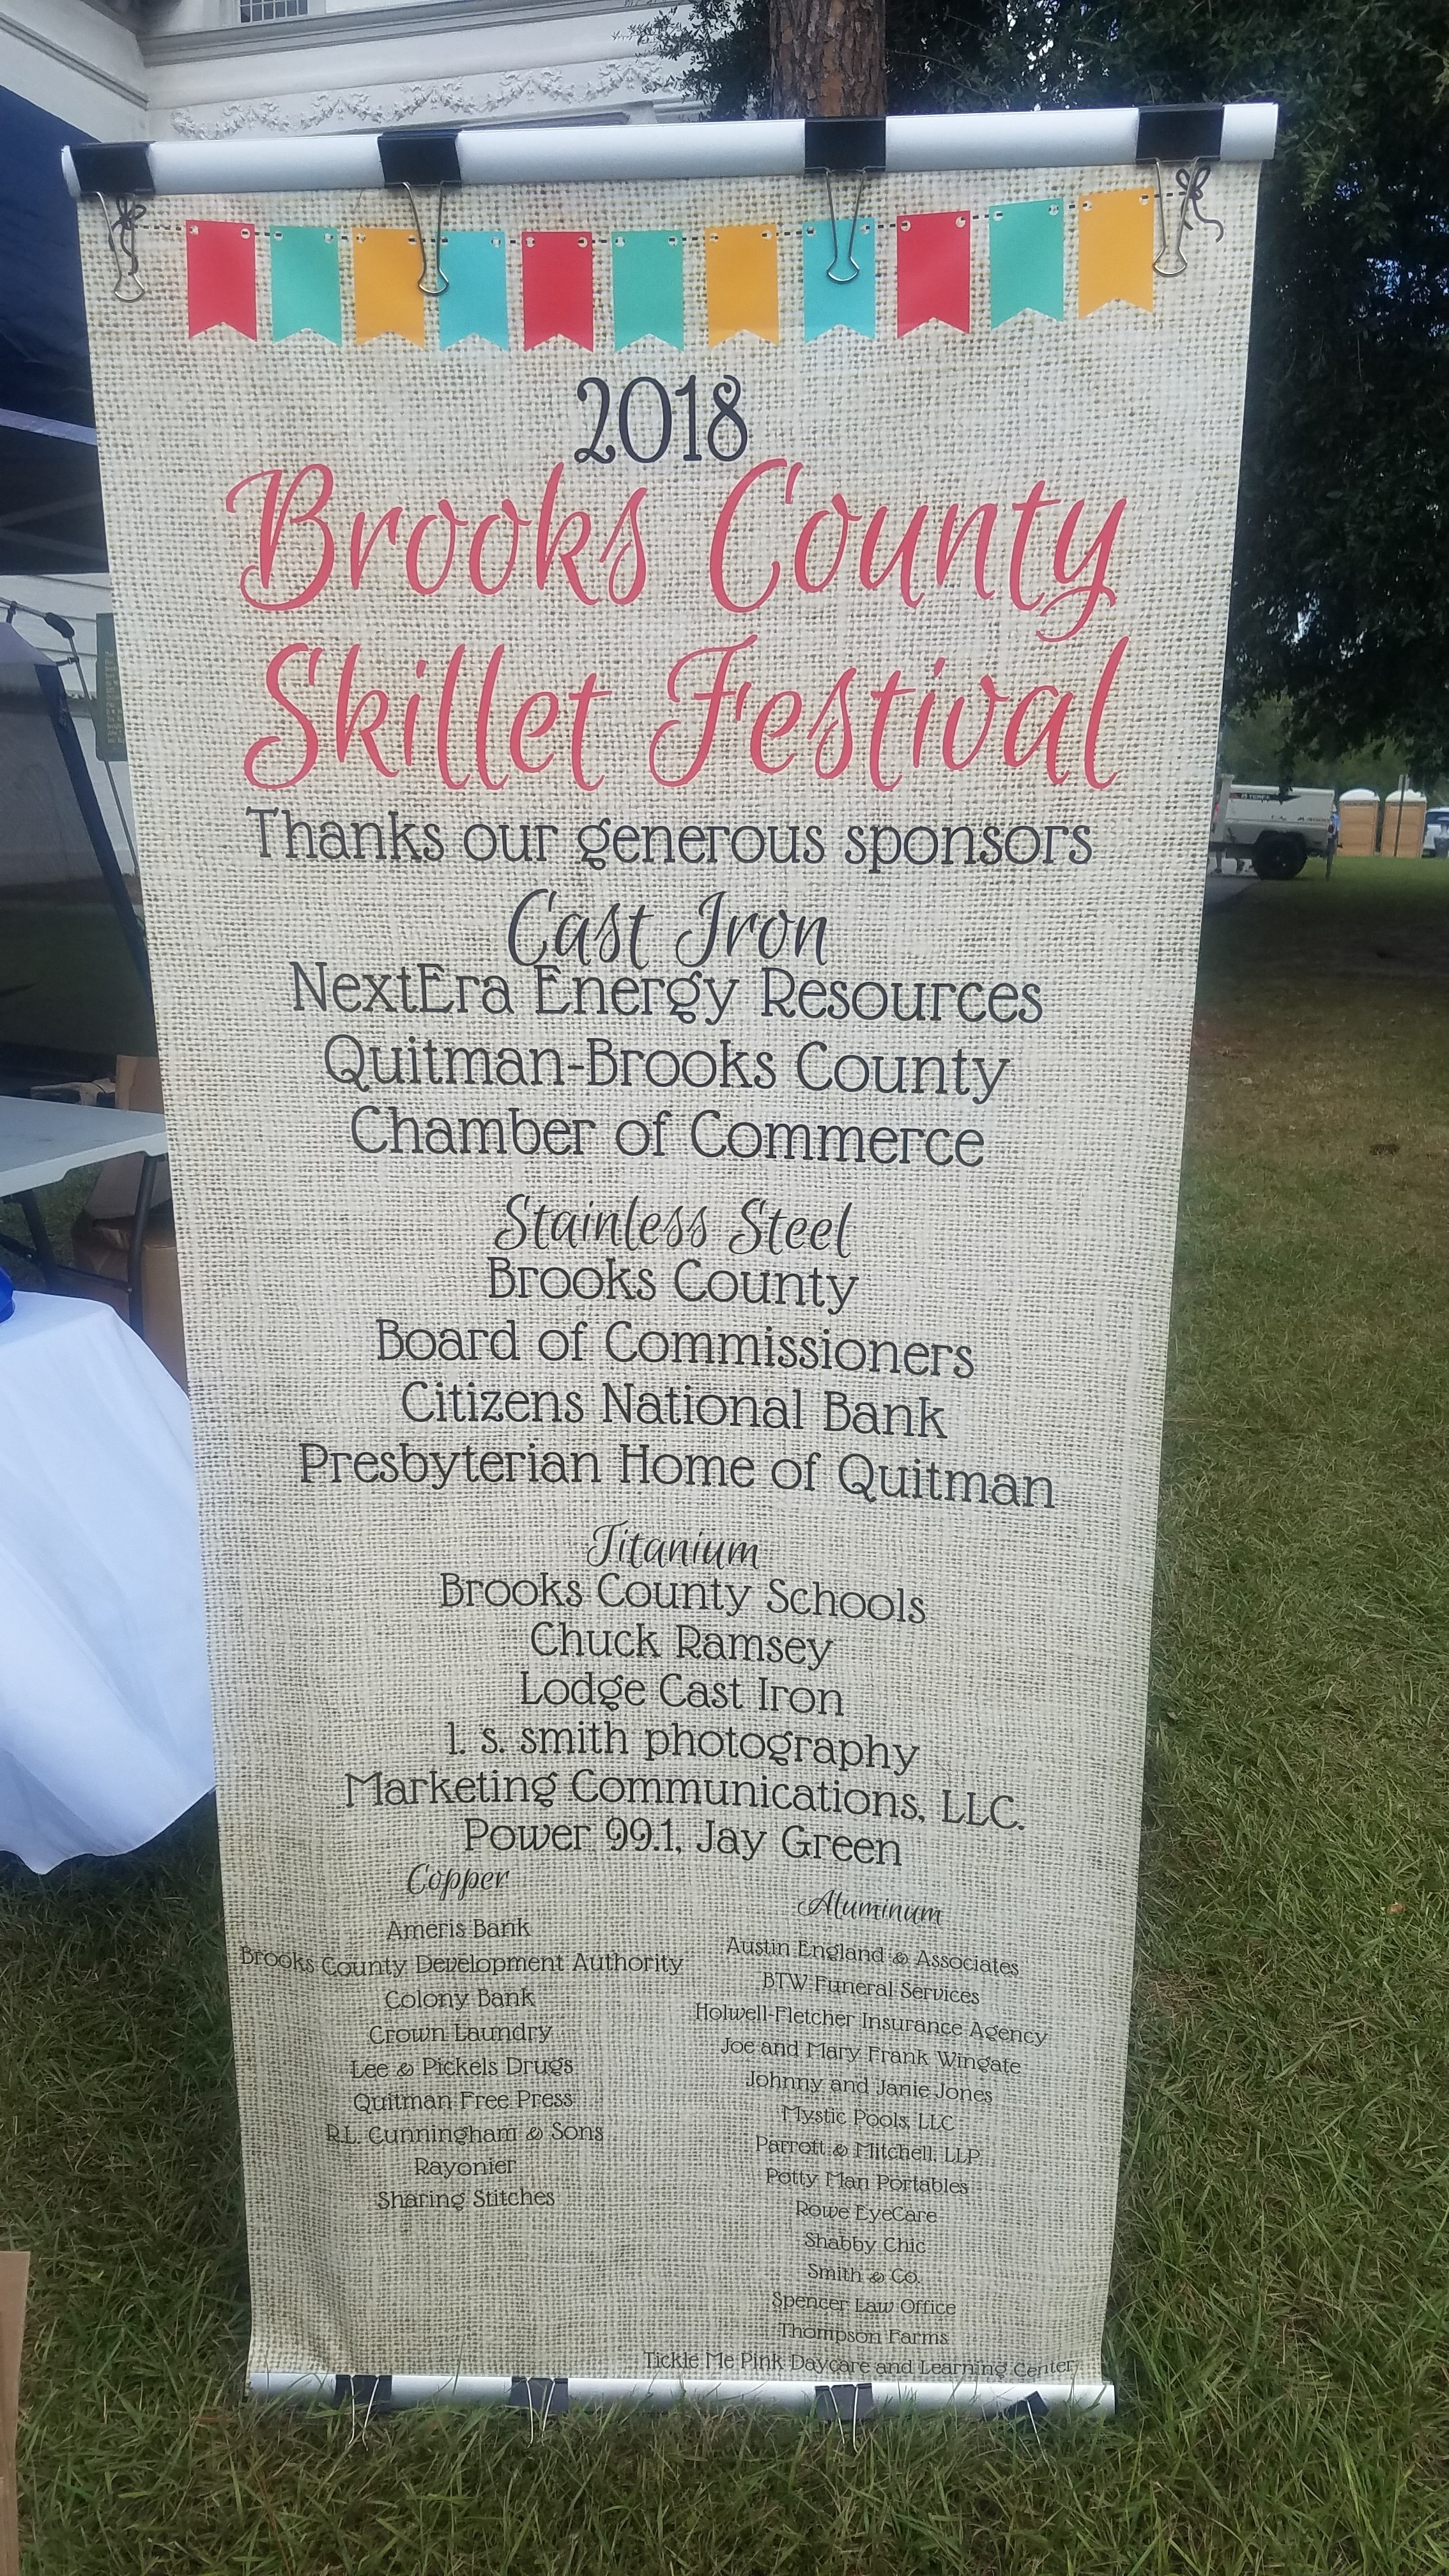 2268x4032 Sponsors, Festival, in Pictures: Brooks County Skillet Festival, by John S. Quarterman, for WWALS.net, 20 October 2018